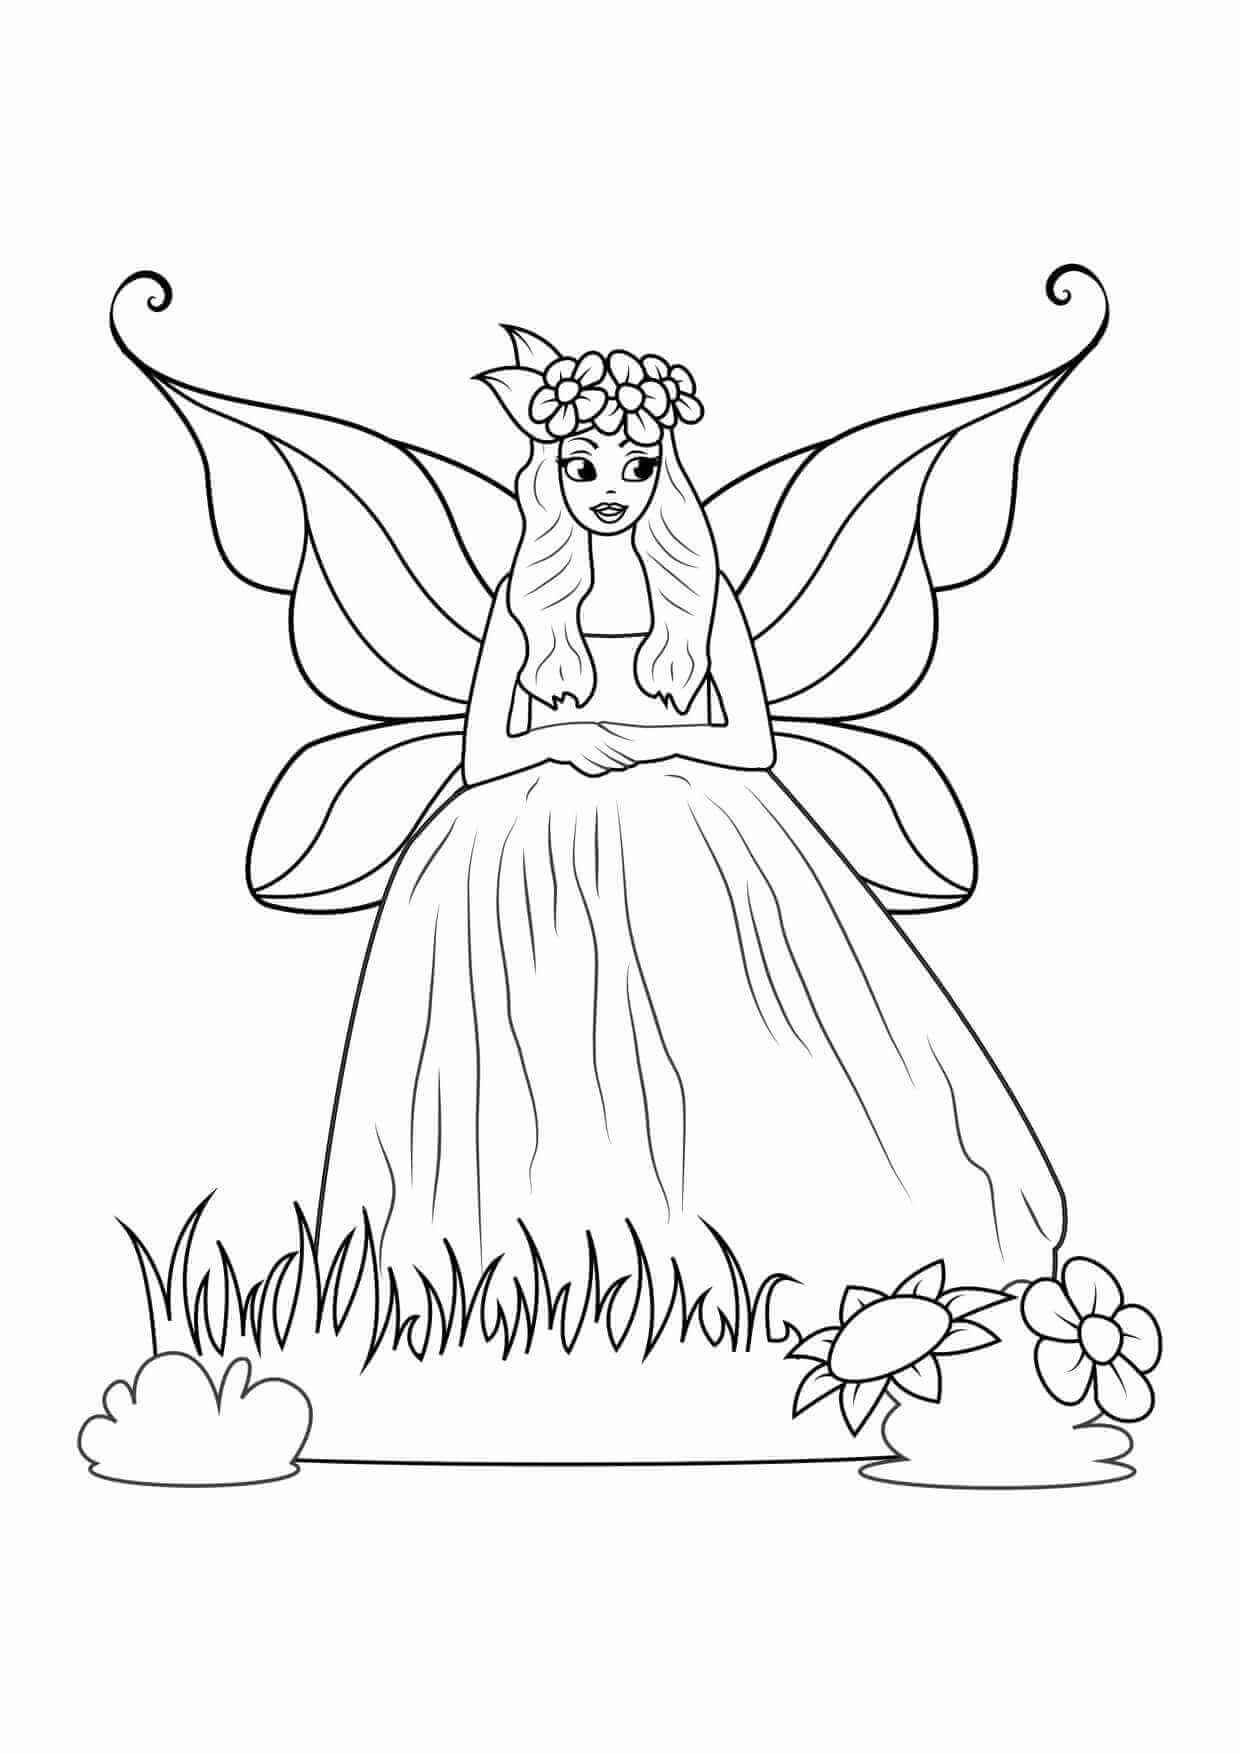 Coloring Pages For Girls Free Printable